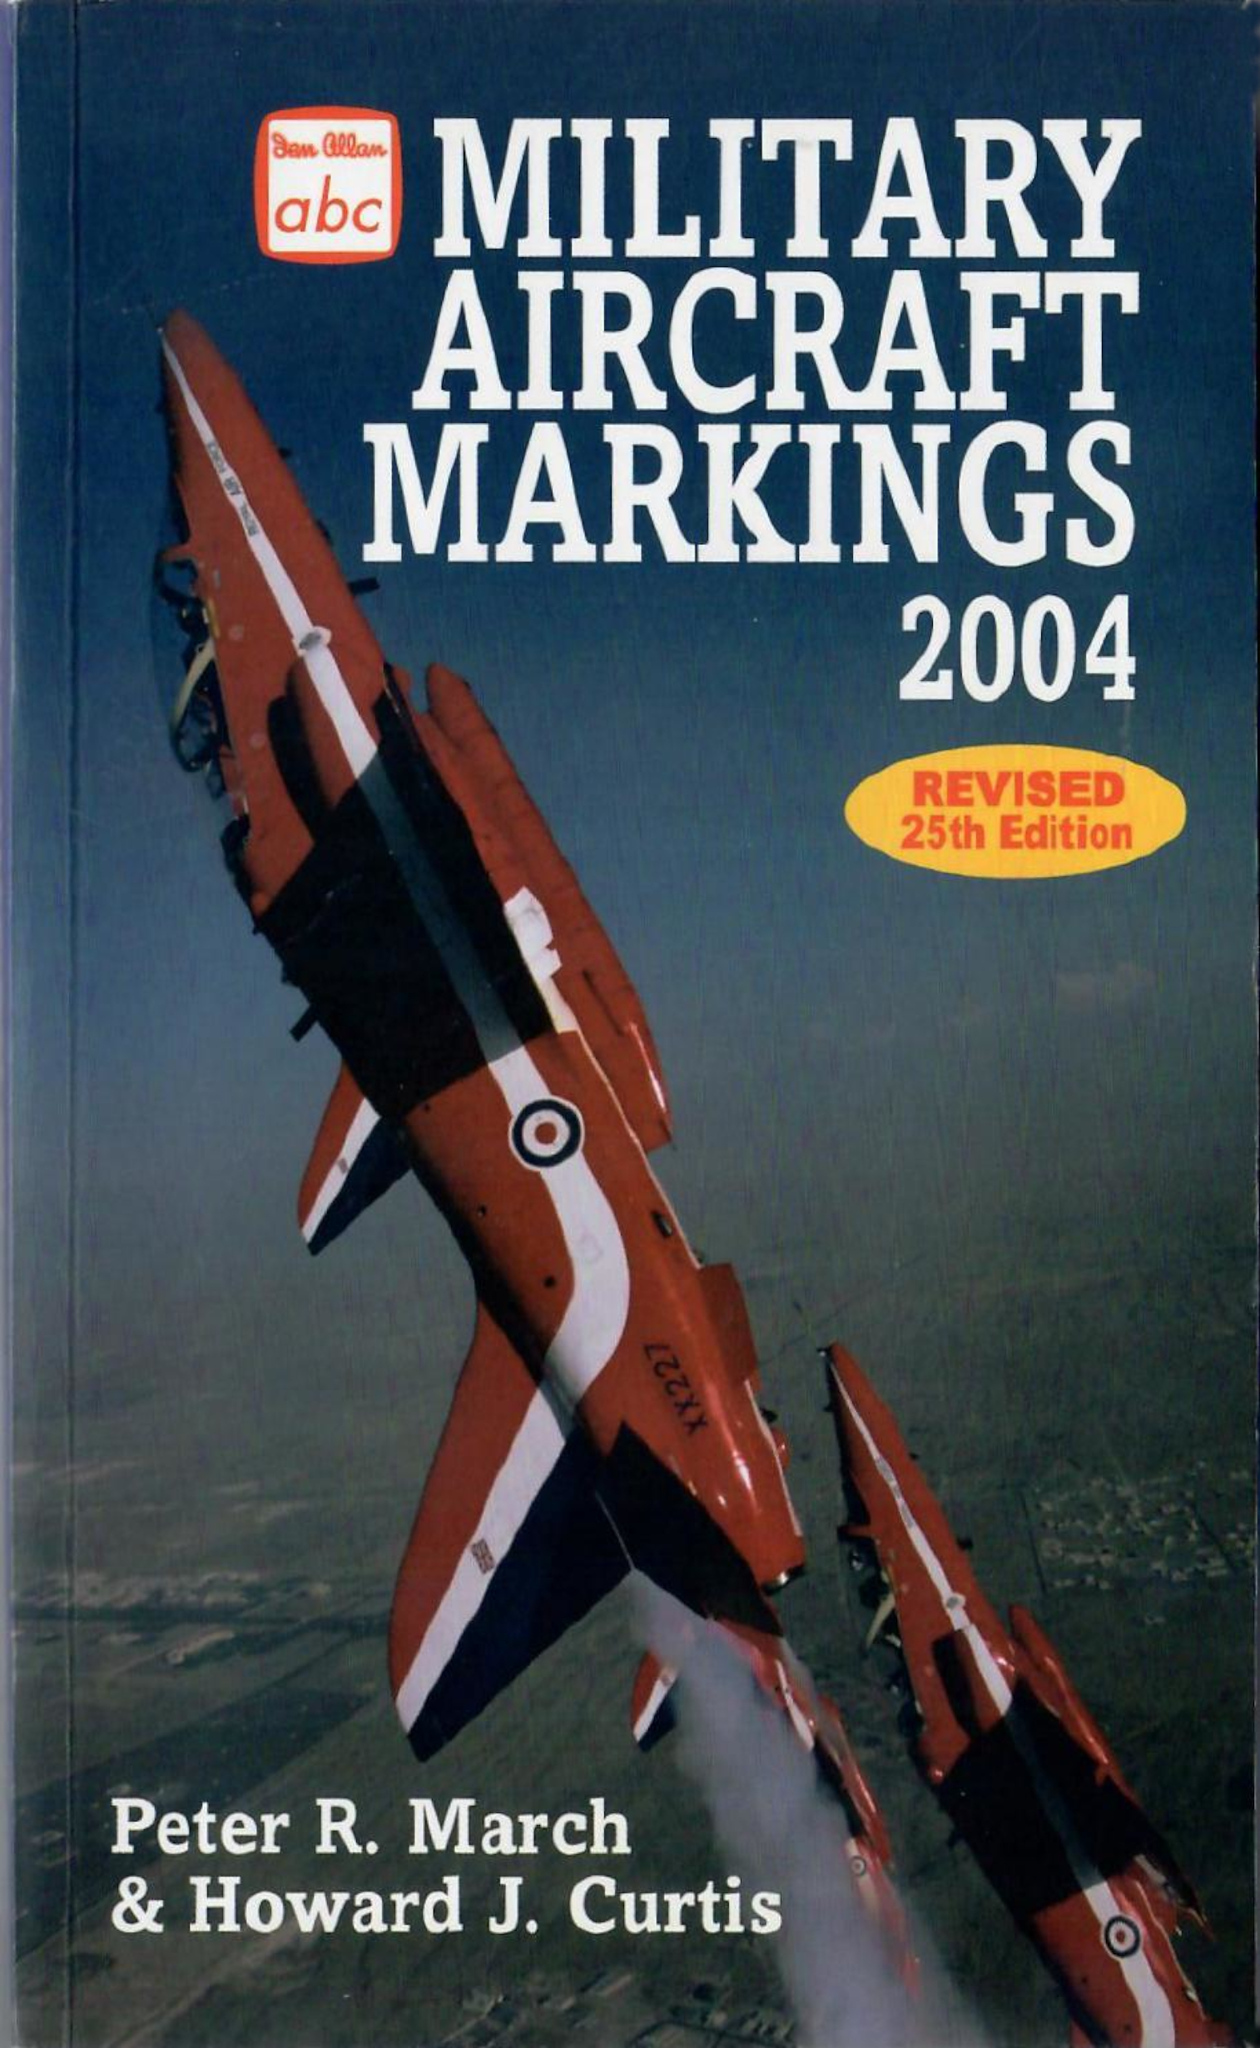 2004 Military Aircraft Markings, 25th edition, by Peter R March & Howard J Curtis, published March 2004, 208pp, ISBN 0-7110-3004-9, code: 0403/E3. This is a promo shot, with subtle differences from the published cover (see previous photo).